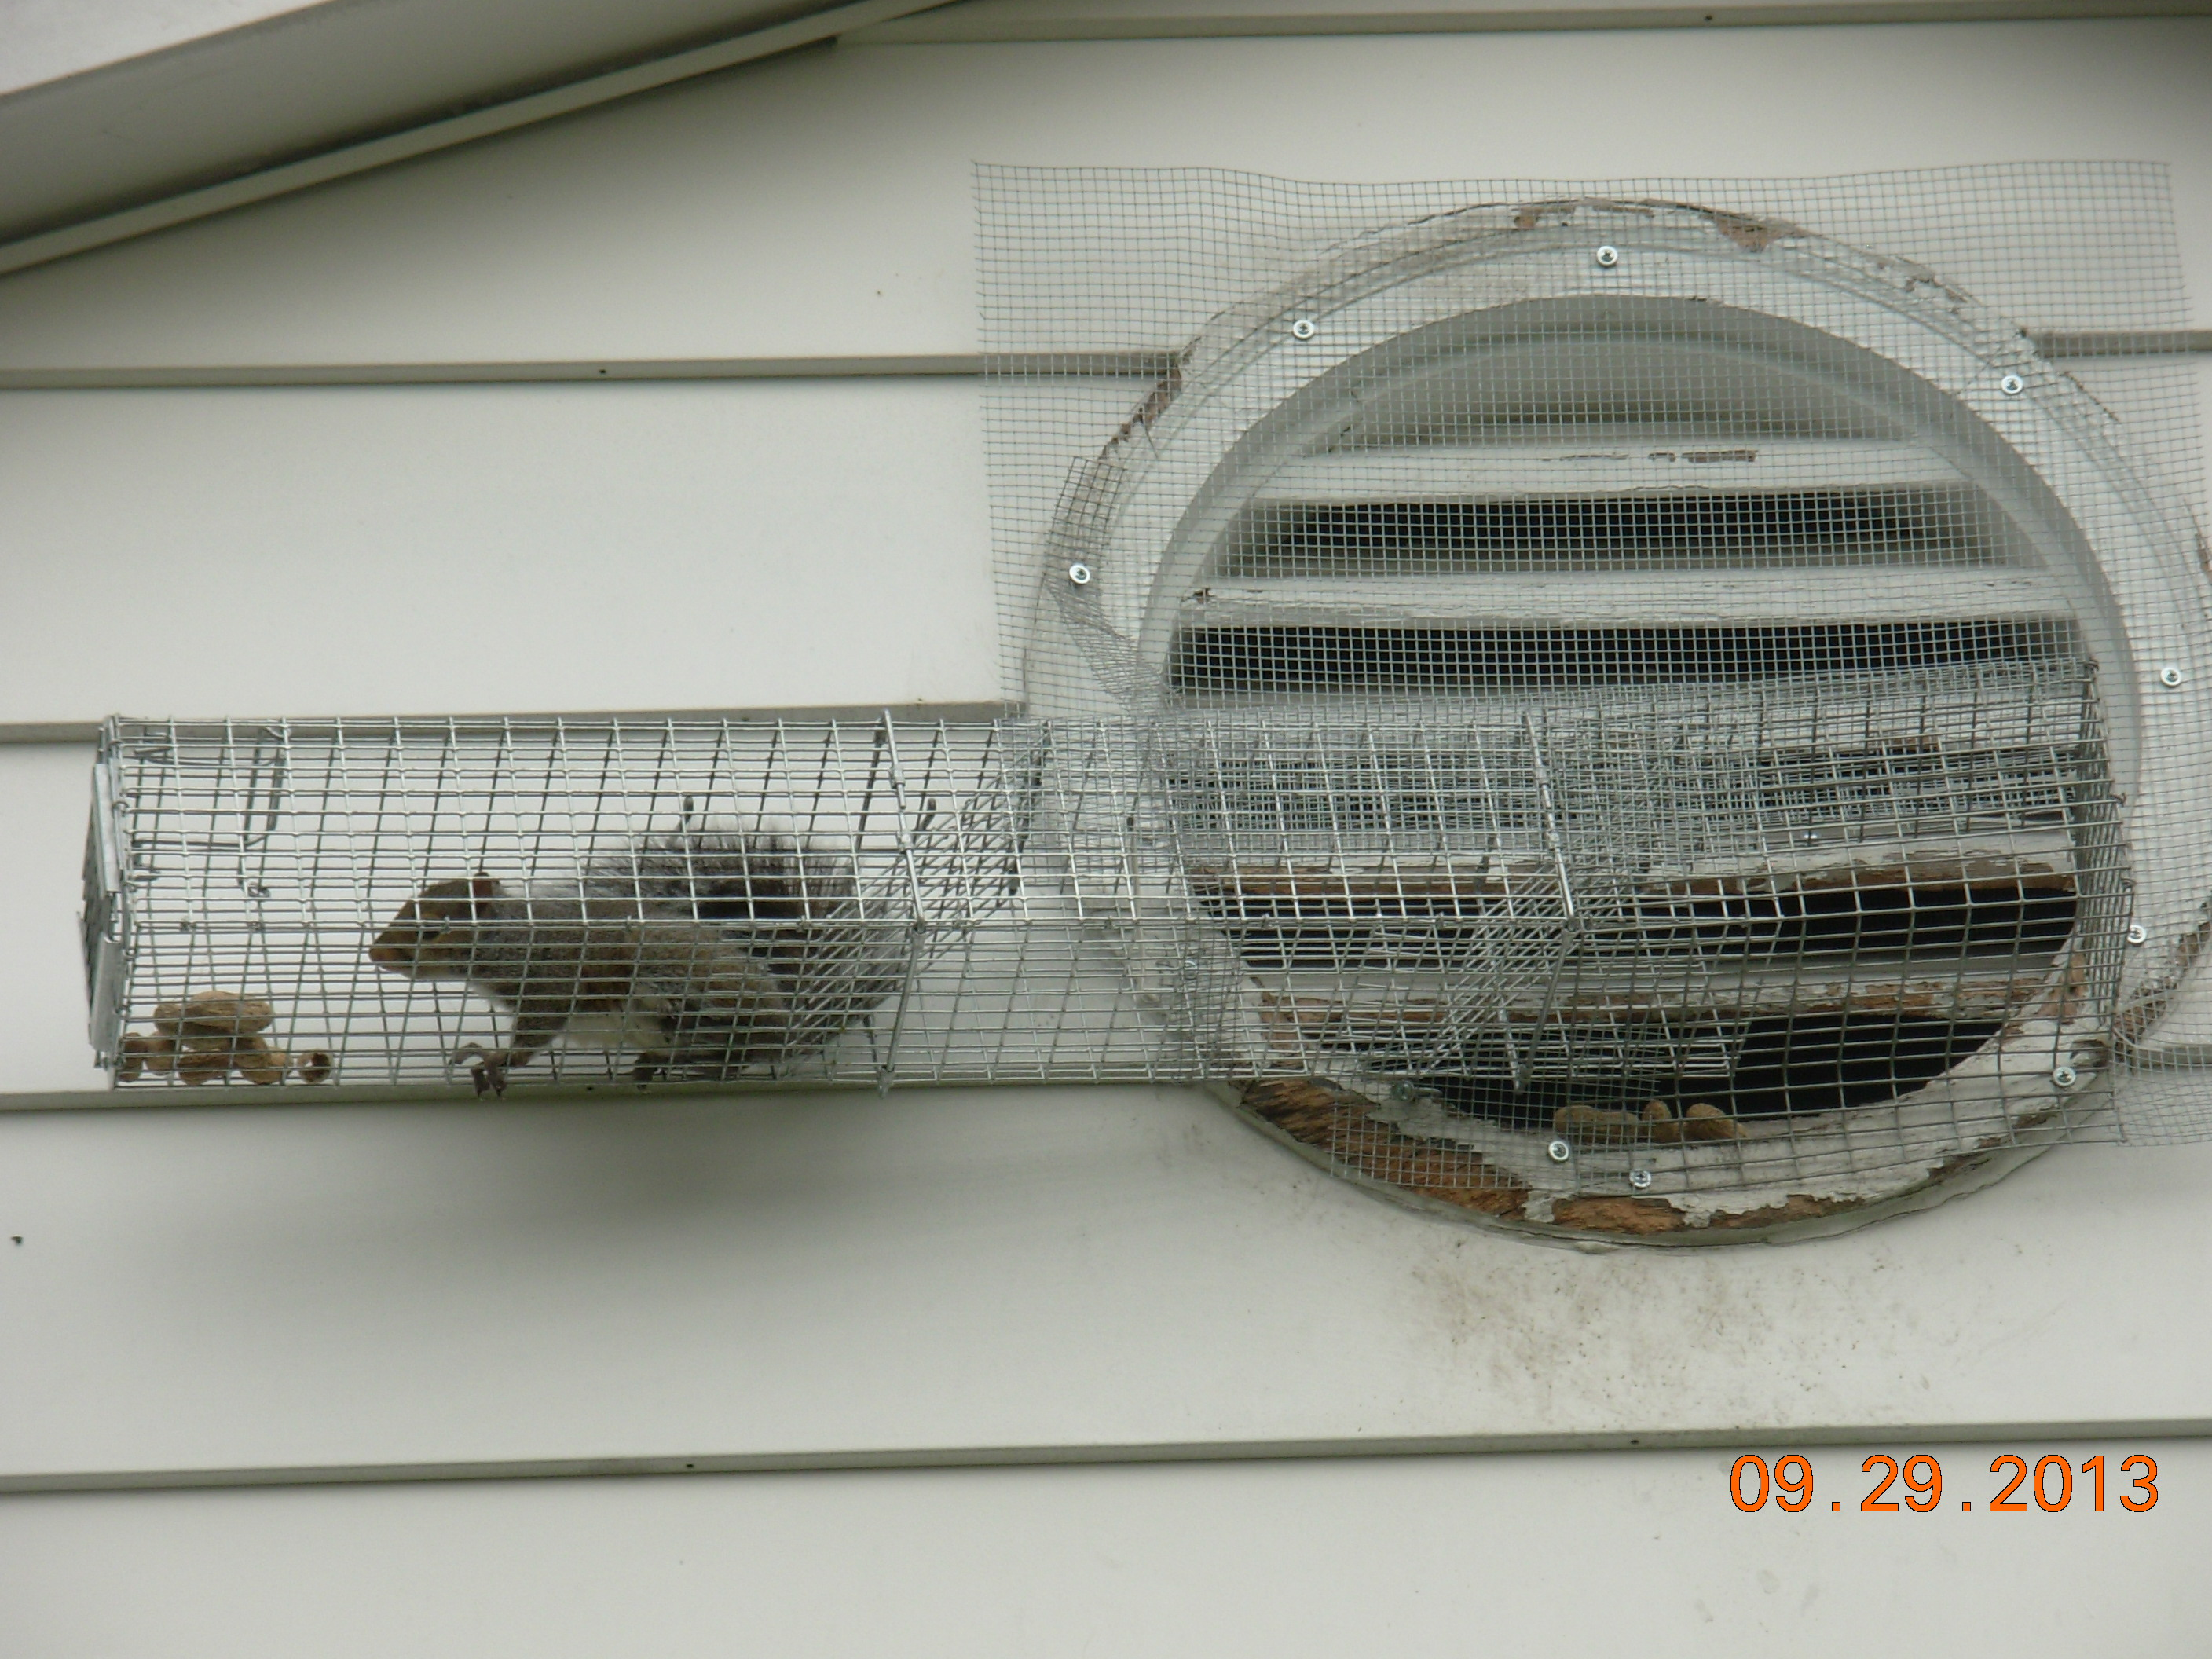 How To Catch A Squirrel From The Attic Nuisance Animal Removal